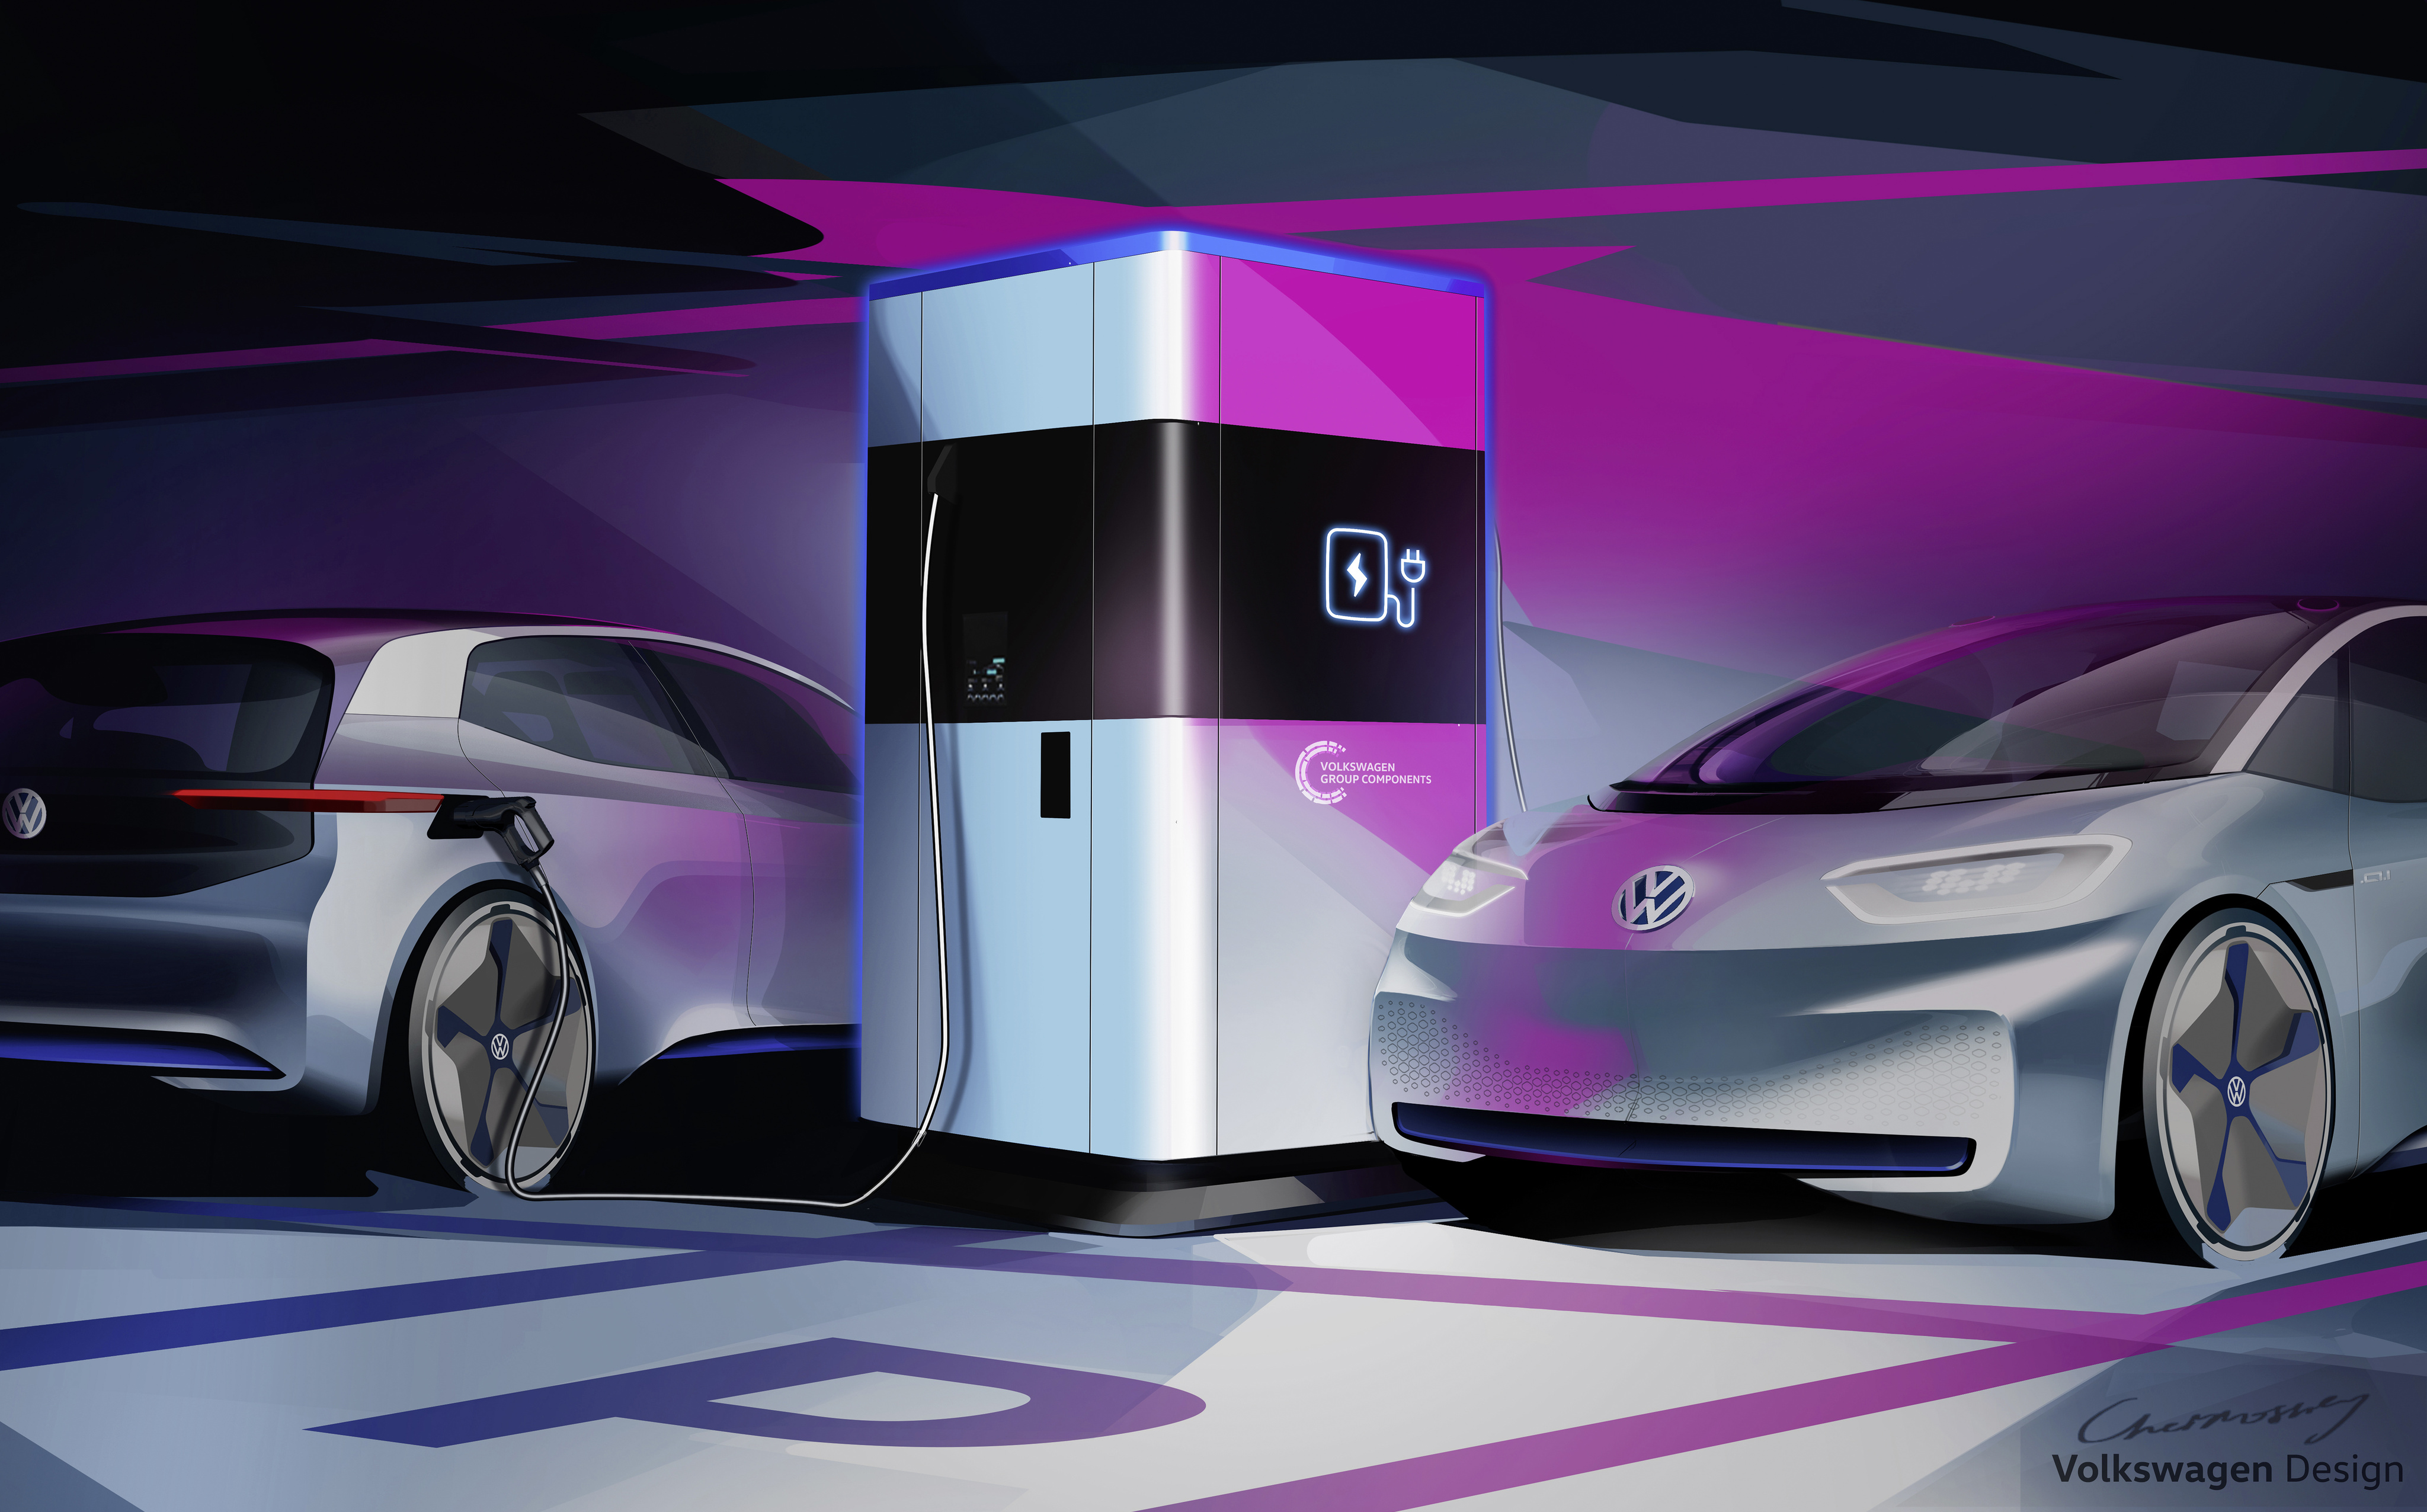 Volkswagen S Mobile Charging Station Will Help Solve A Key Problem With Evs